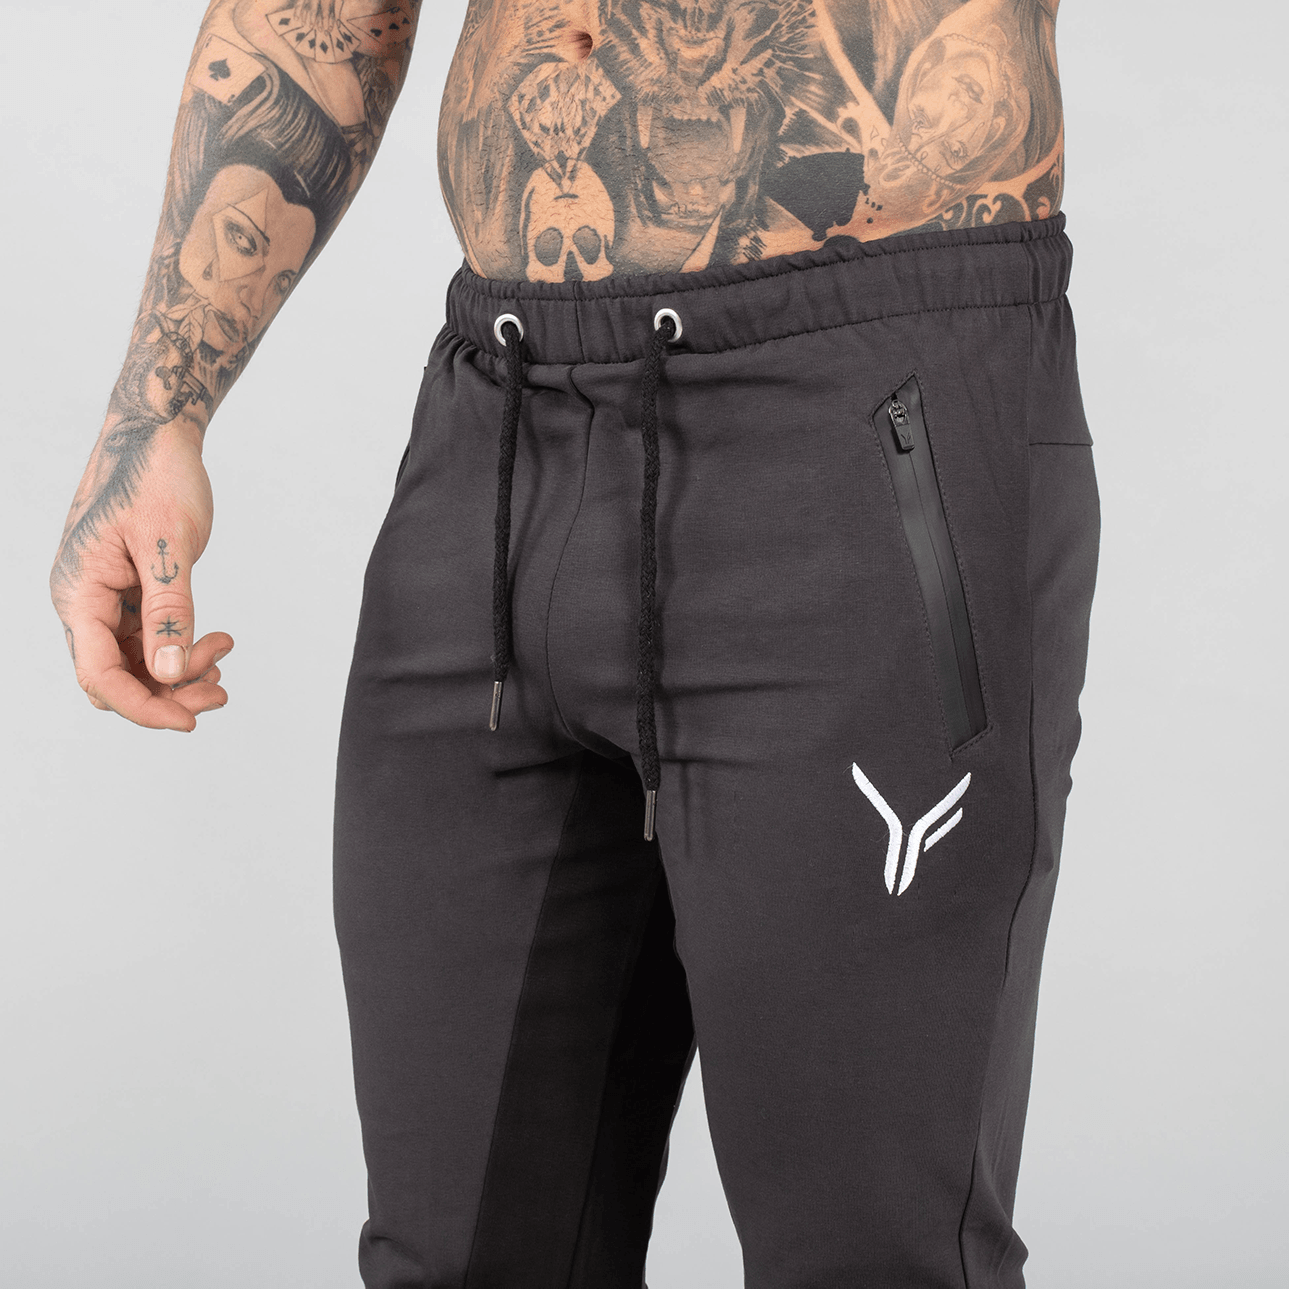 Versa Forma | Chale Track Jogger - Charcoal/Black